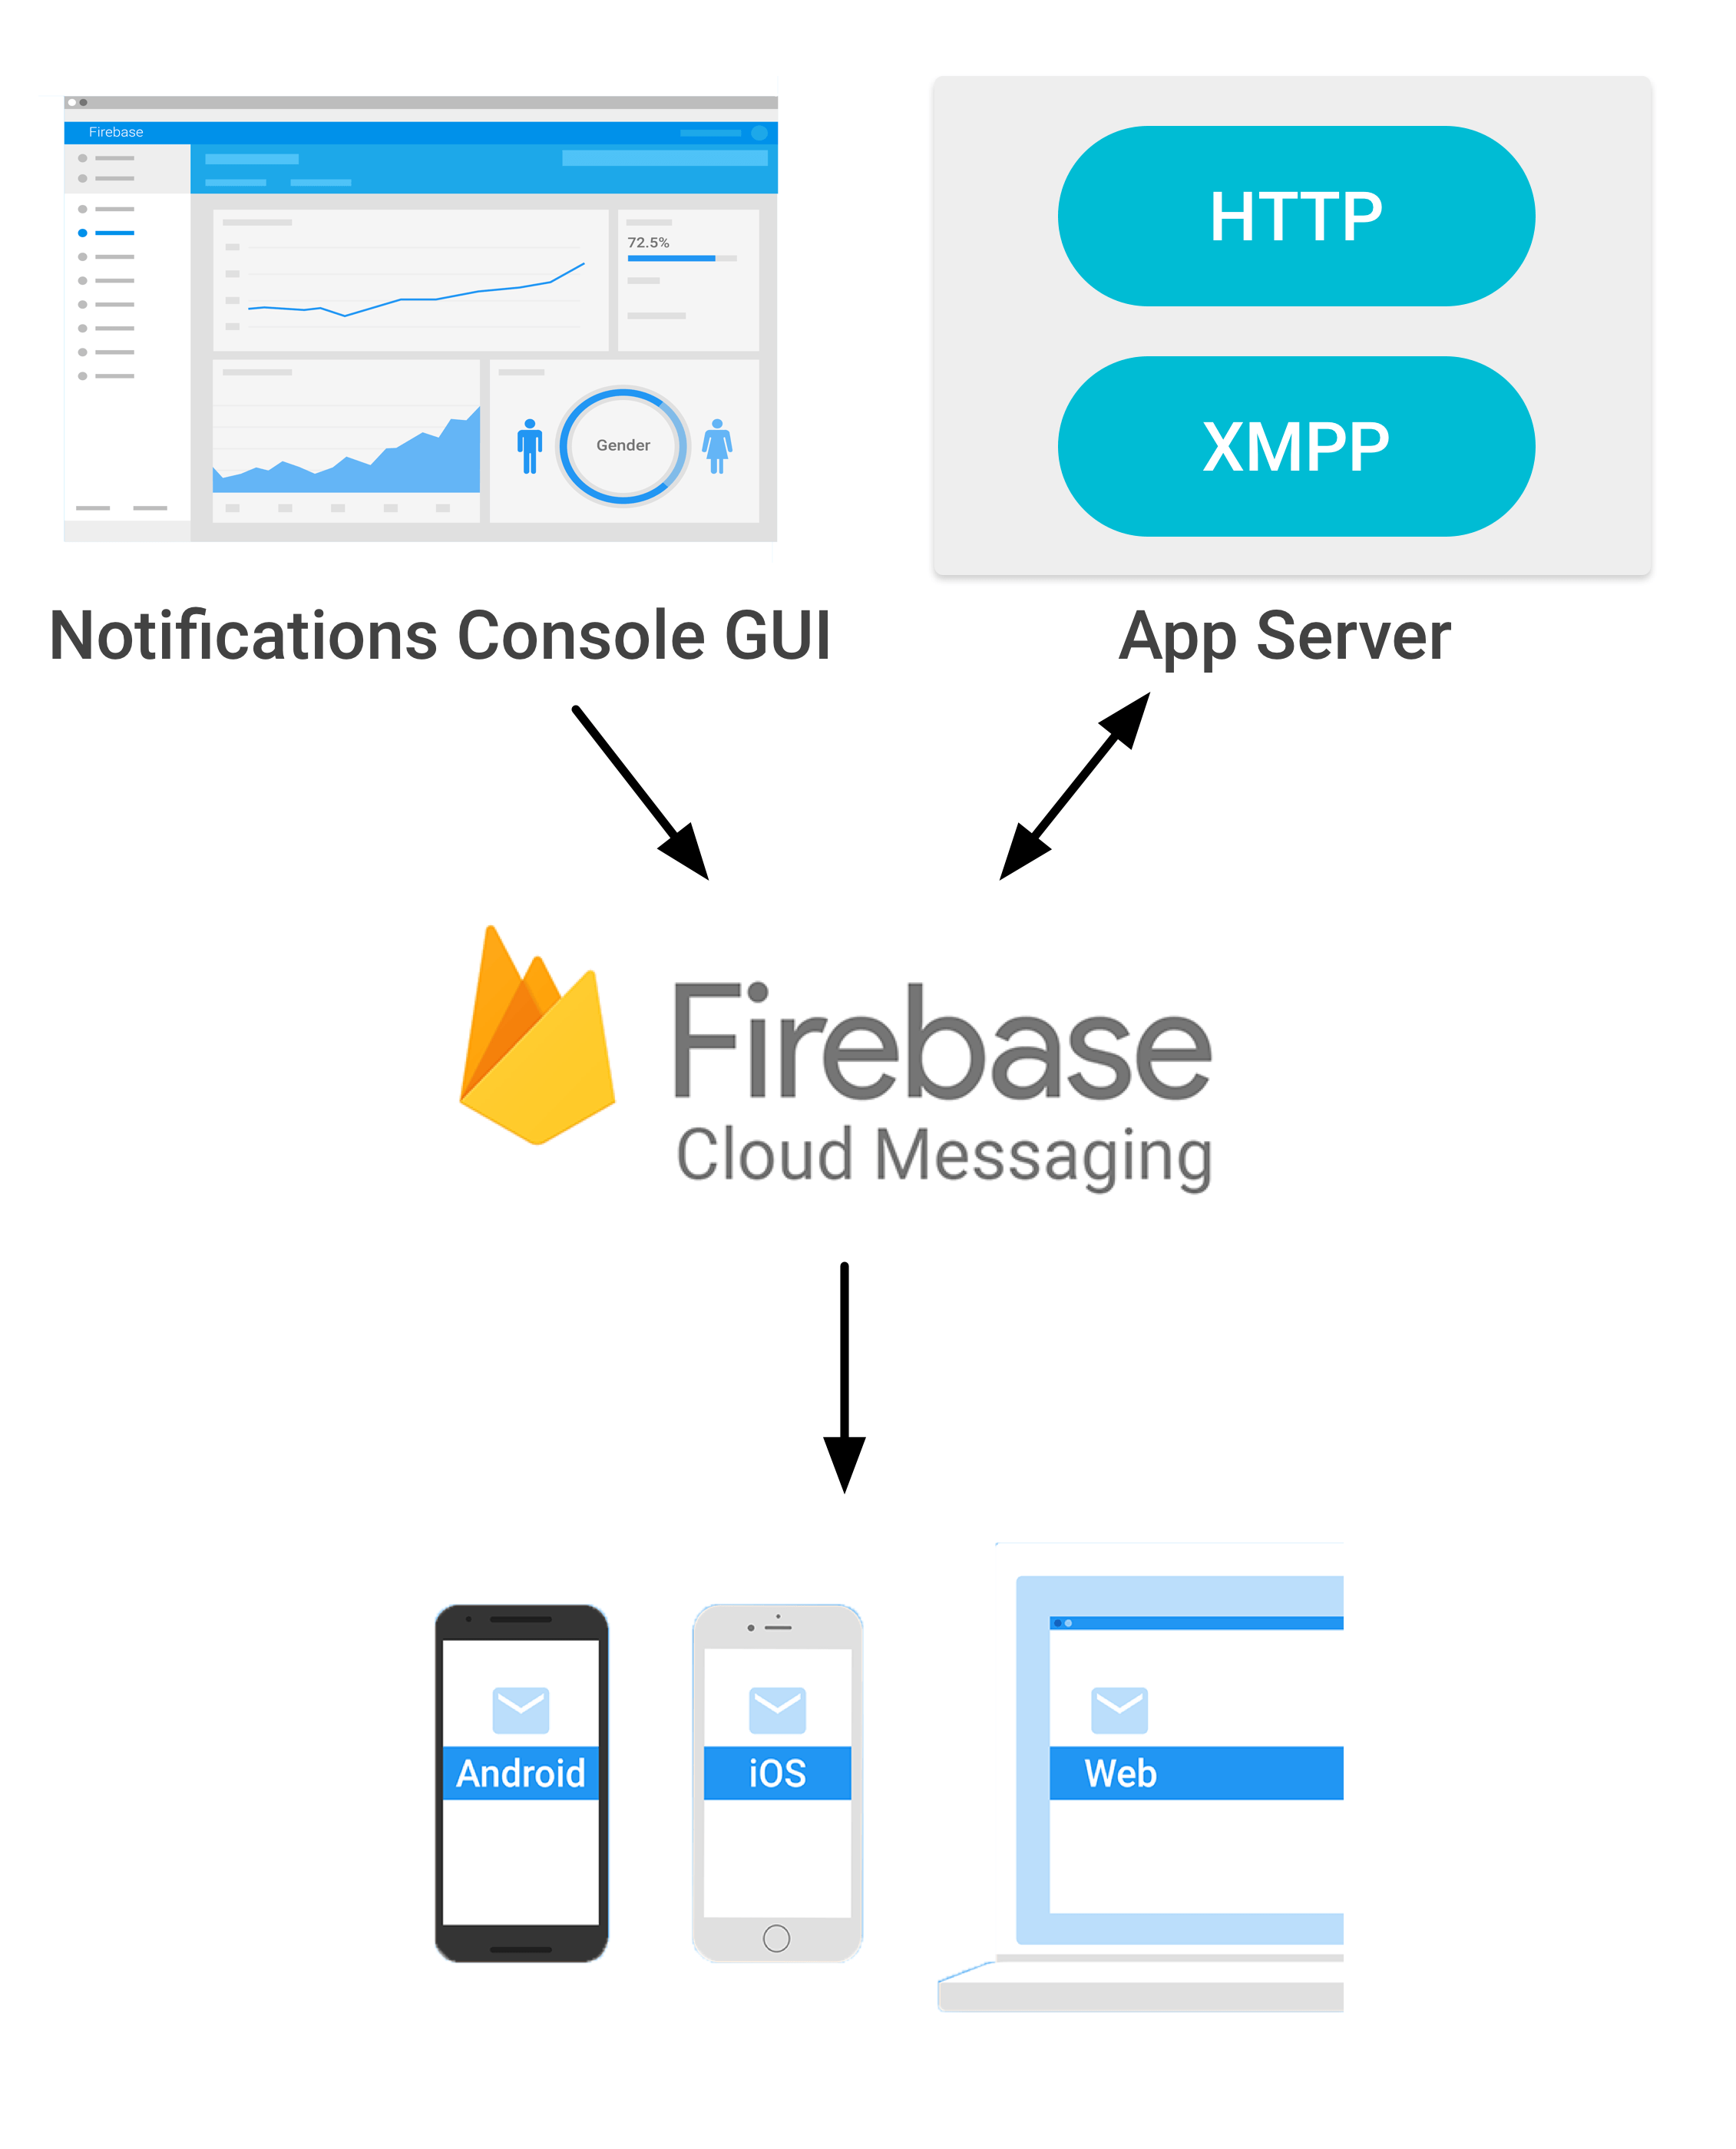 Using Firebase Cloud Messaging for Push Notifications in iOS